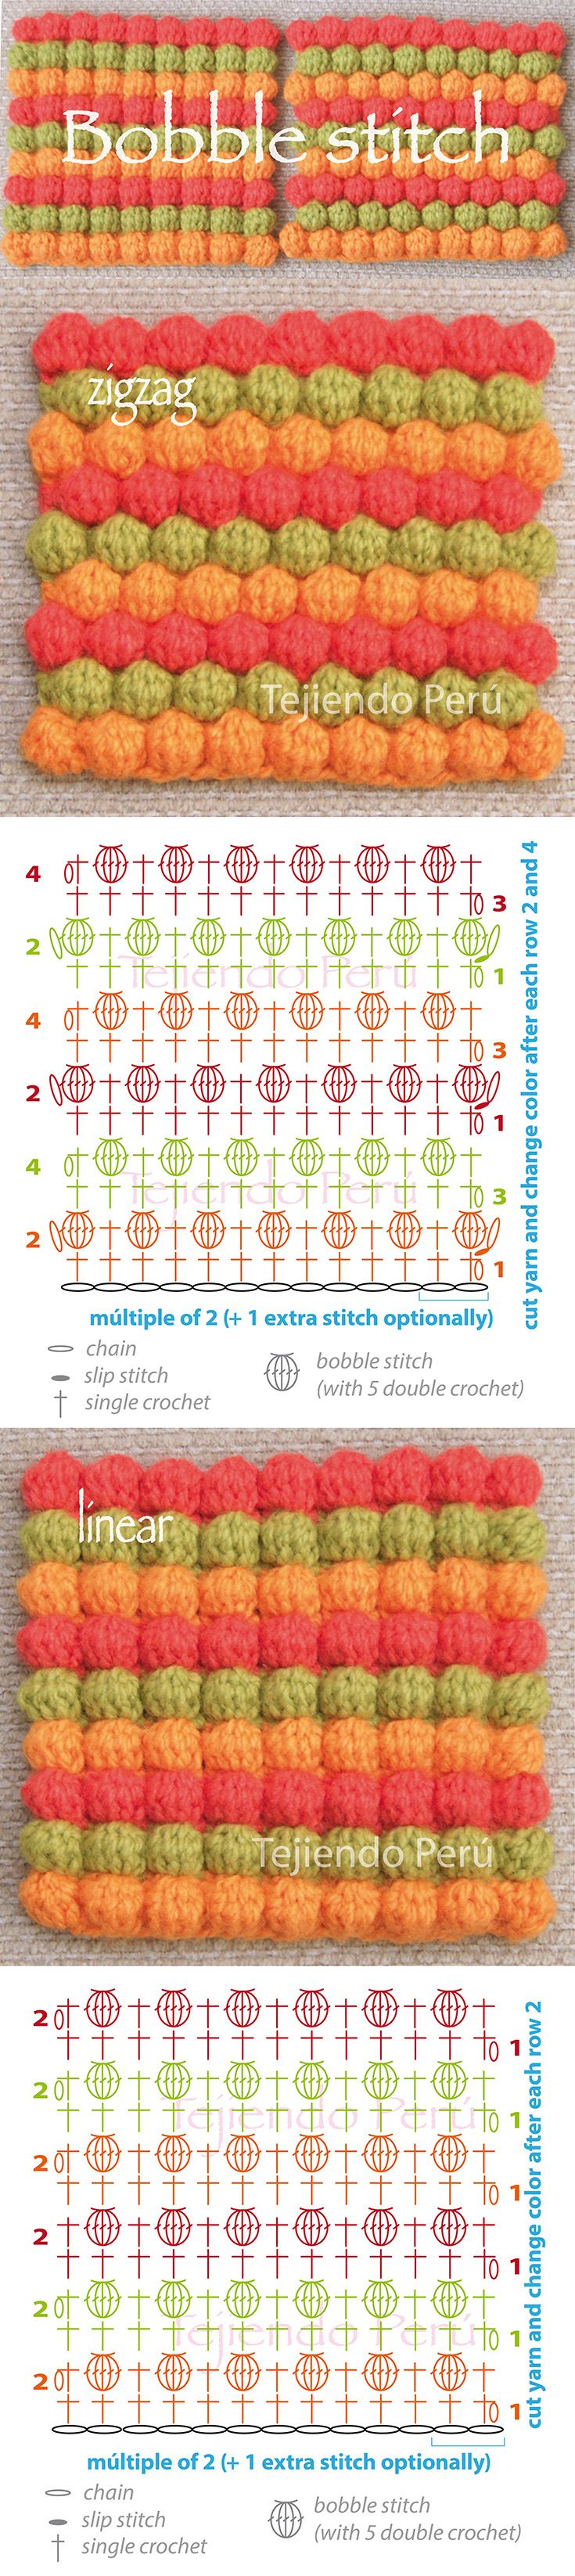 Crochet bobble stitch pattern: zigzag and linear! (diagram or chart)